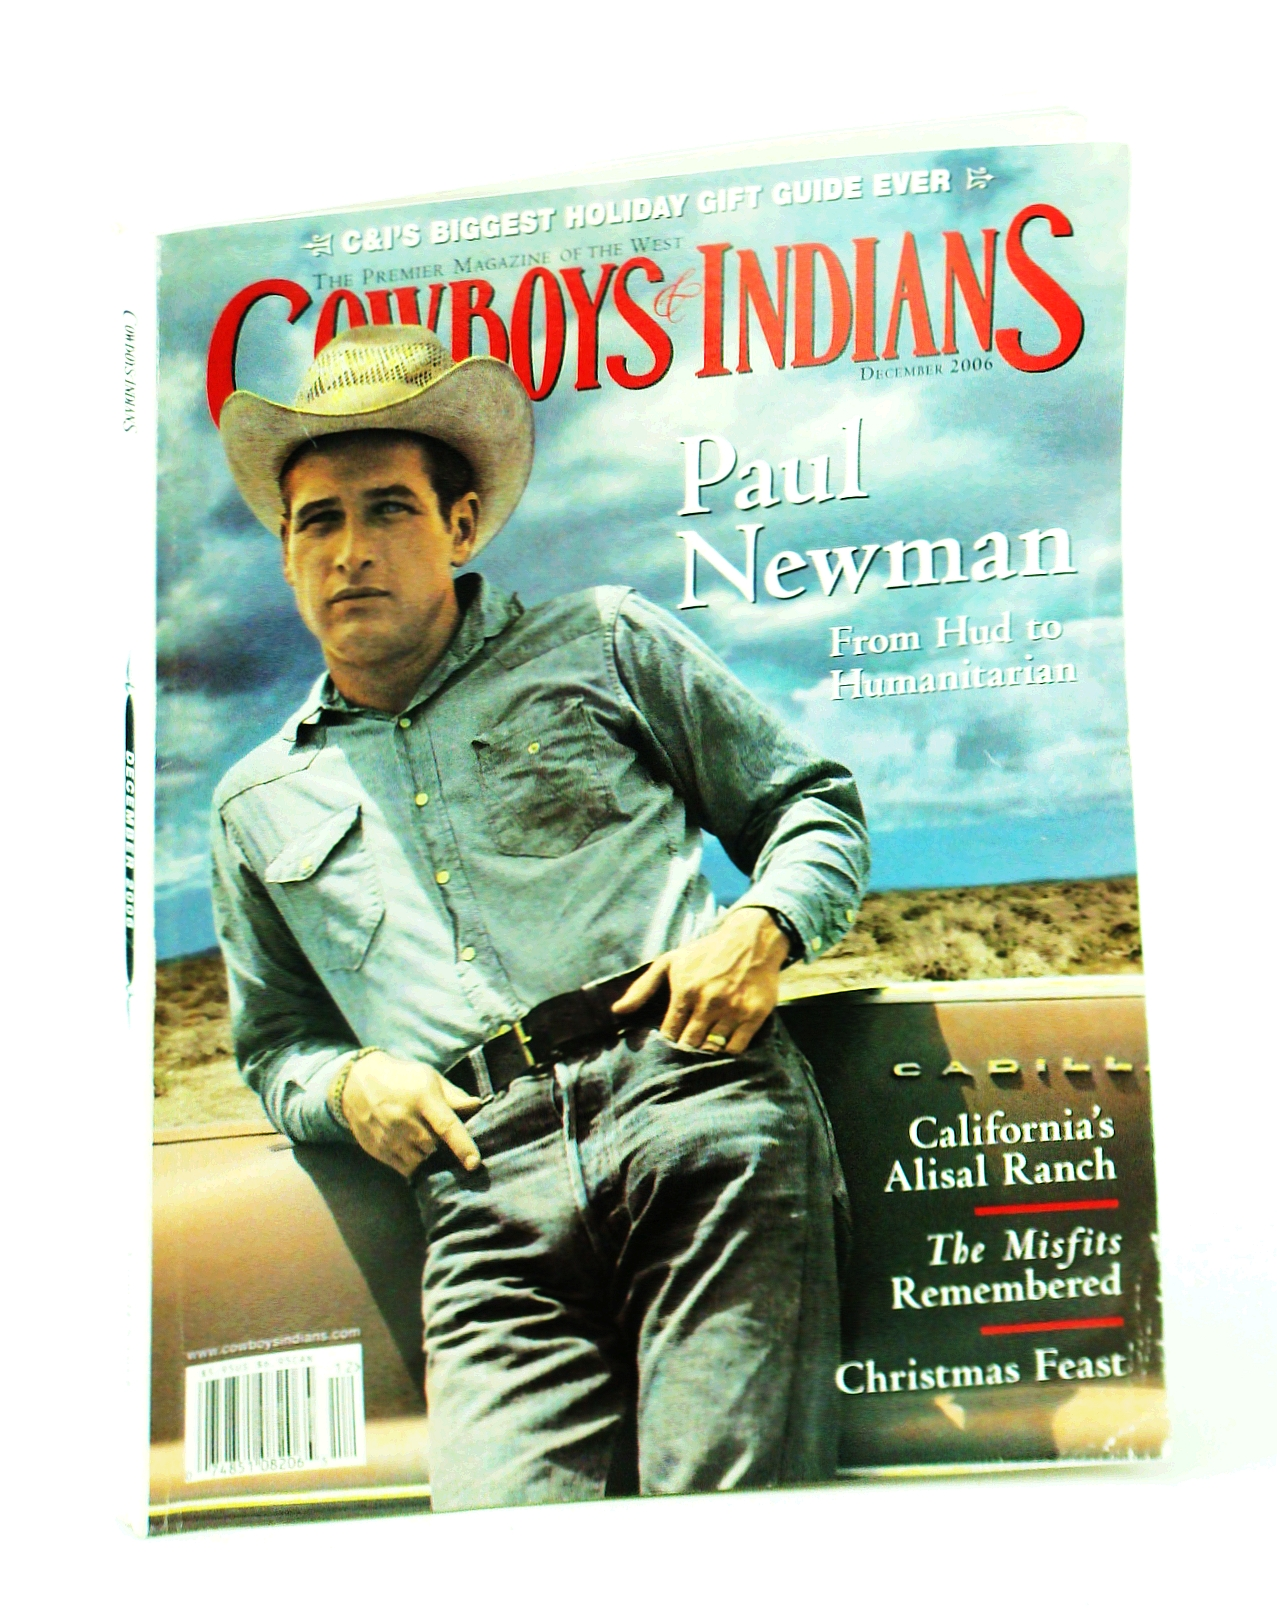 Image for COWBOYS & INDIANS magazine December 2006 (The Premier Magazine Of The West, www.cowboysindians.com, Volume 14 Number 8, C & I's Biggest Holiday Gift Guide Ever, Paul Newman from Hud to Humanitarian, California's Alisal Ranch, The Misfits Remembered,